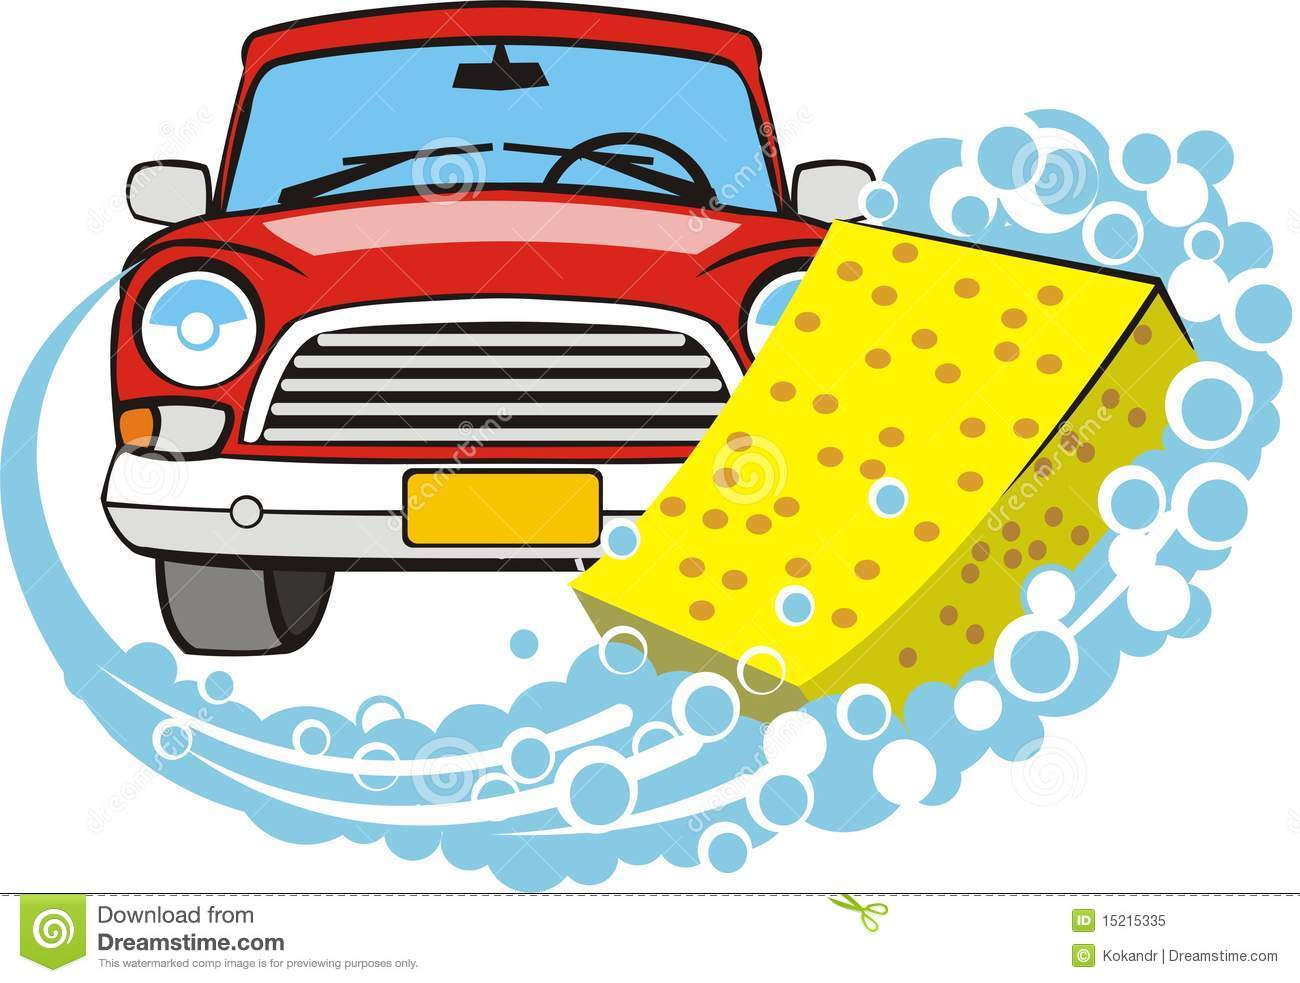 Sponge and hand car wash clipart.